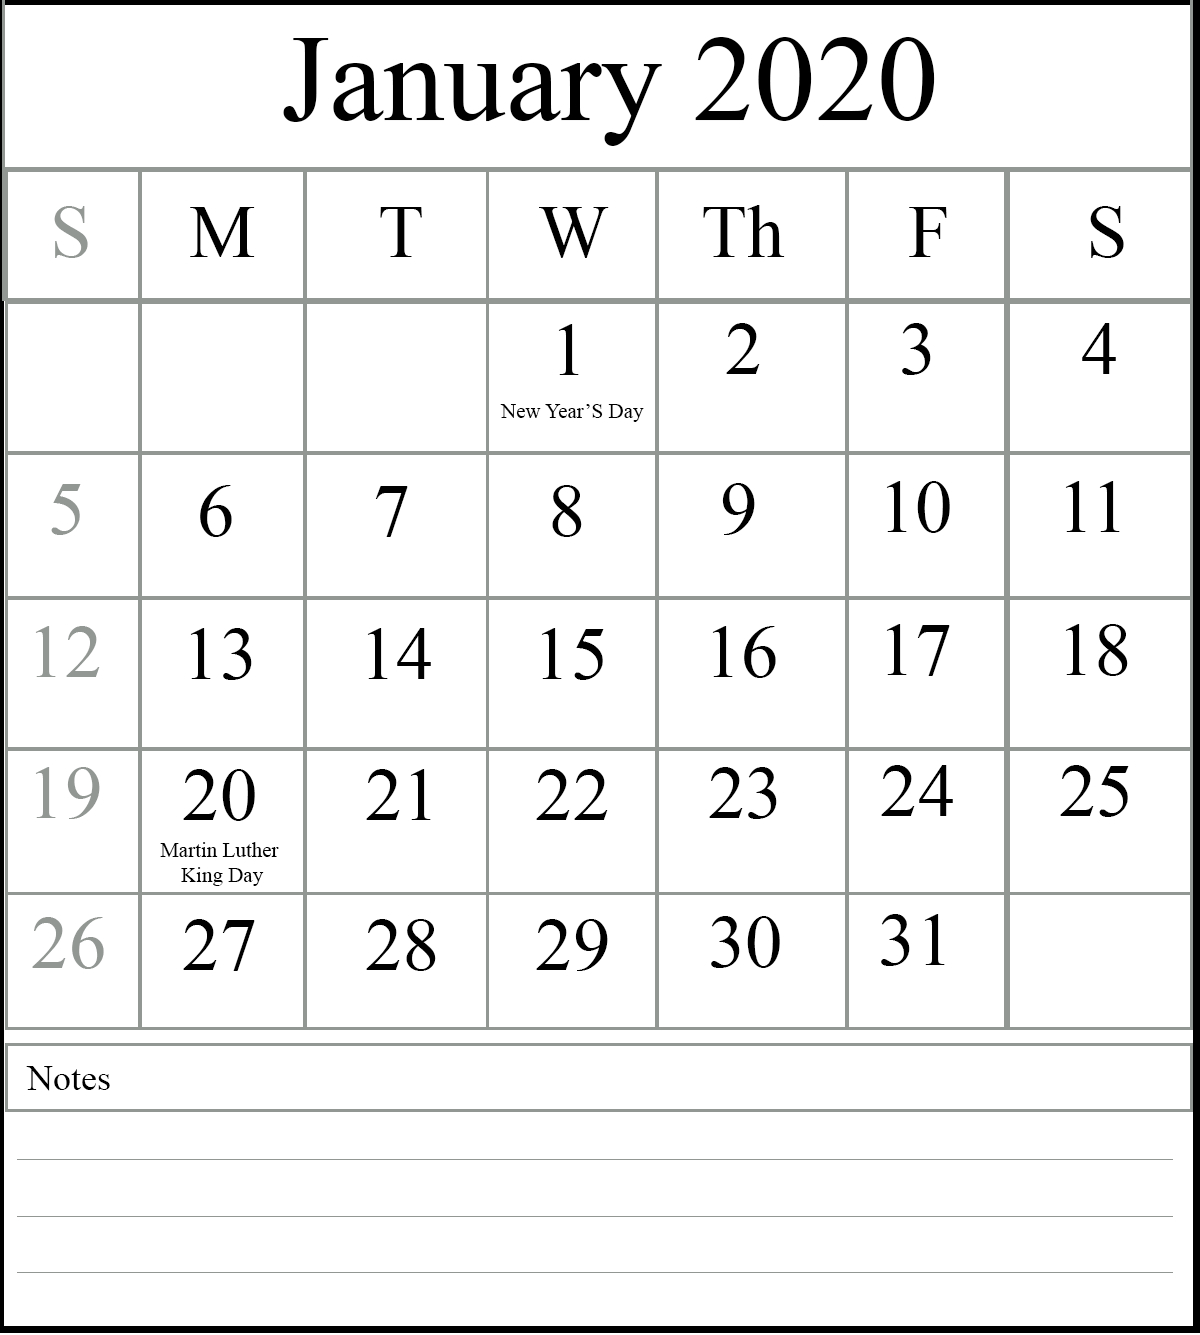 Free January 2020 Calendar Template | Printable April